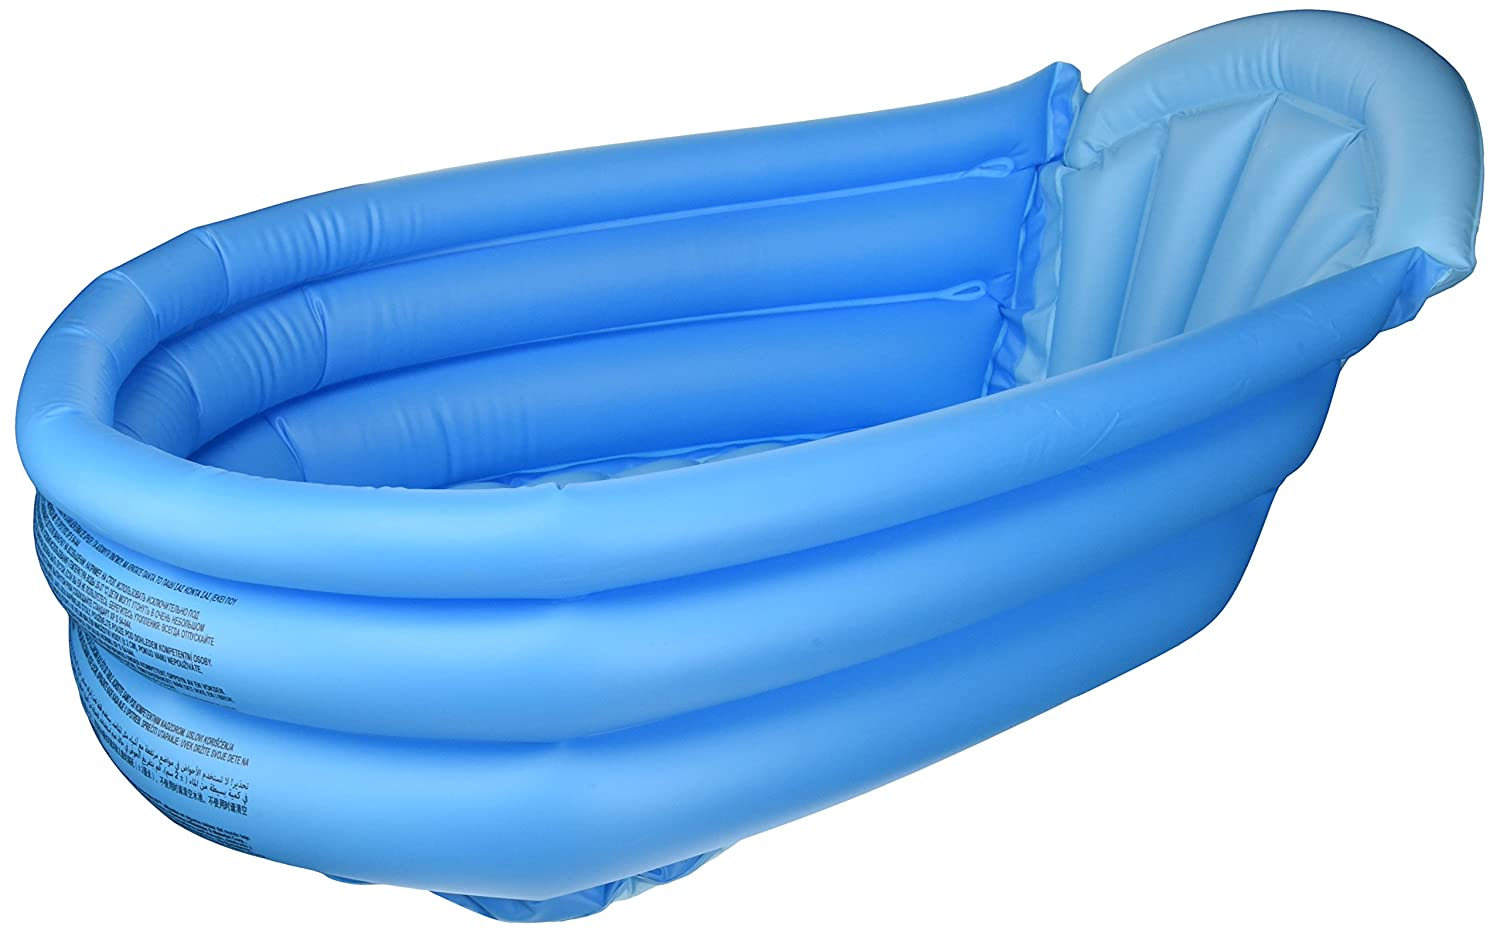 Buy BestWay Baby Pool Online at Low Prices in India - Amazon.in